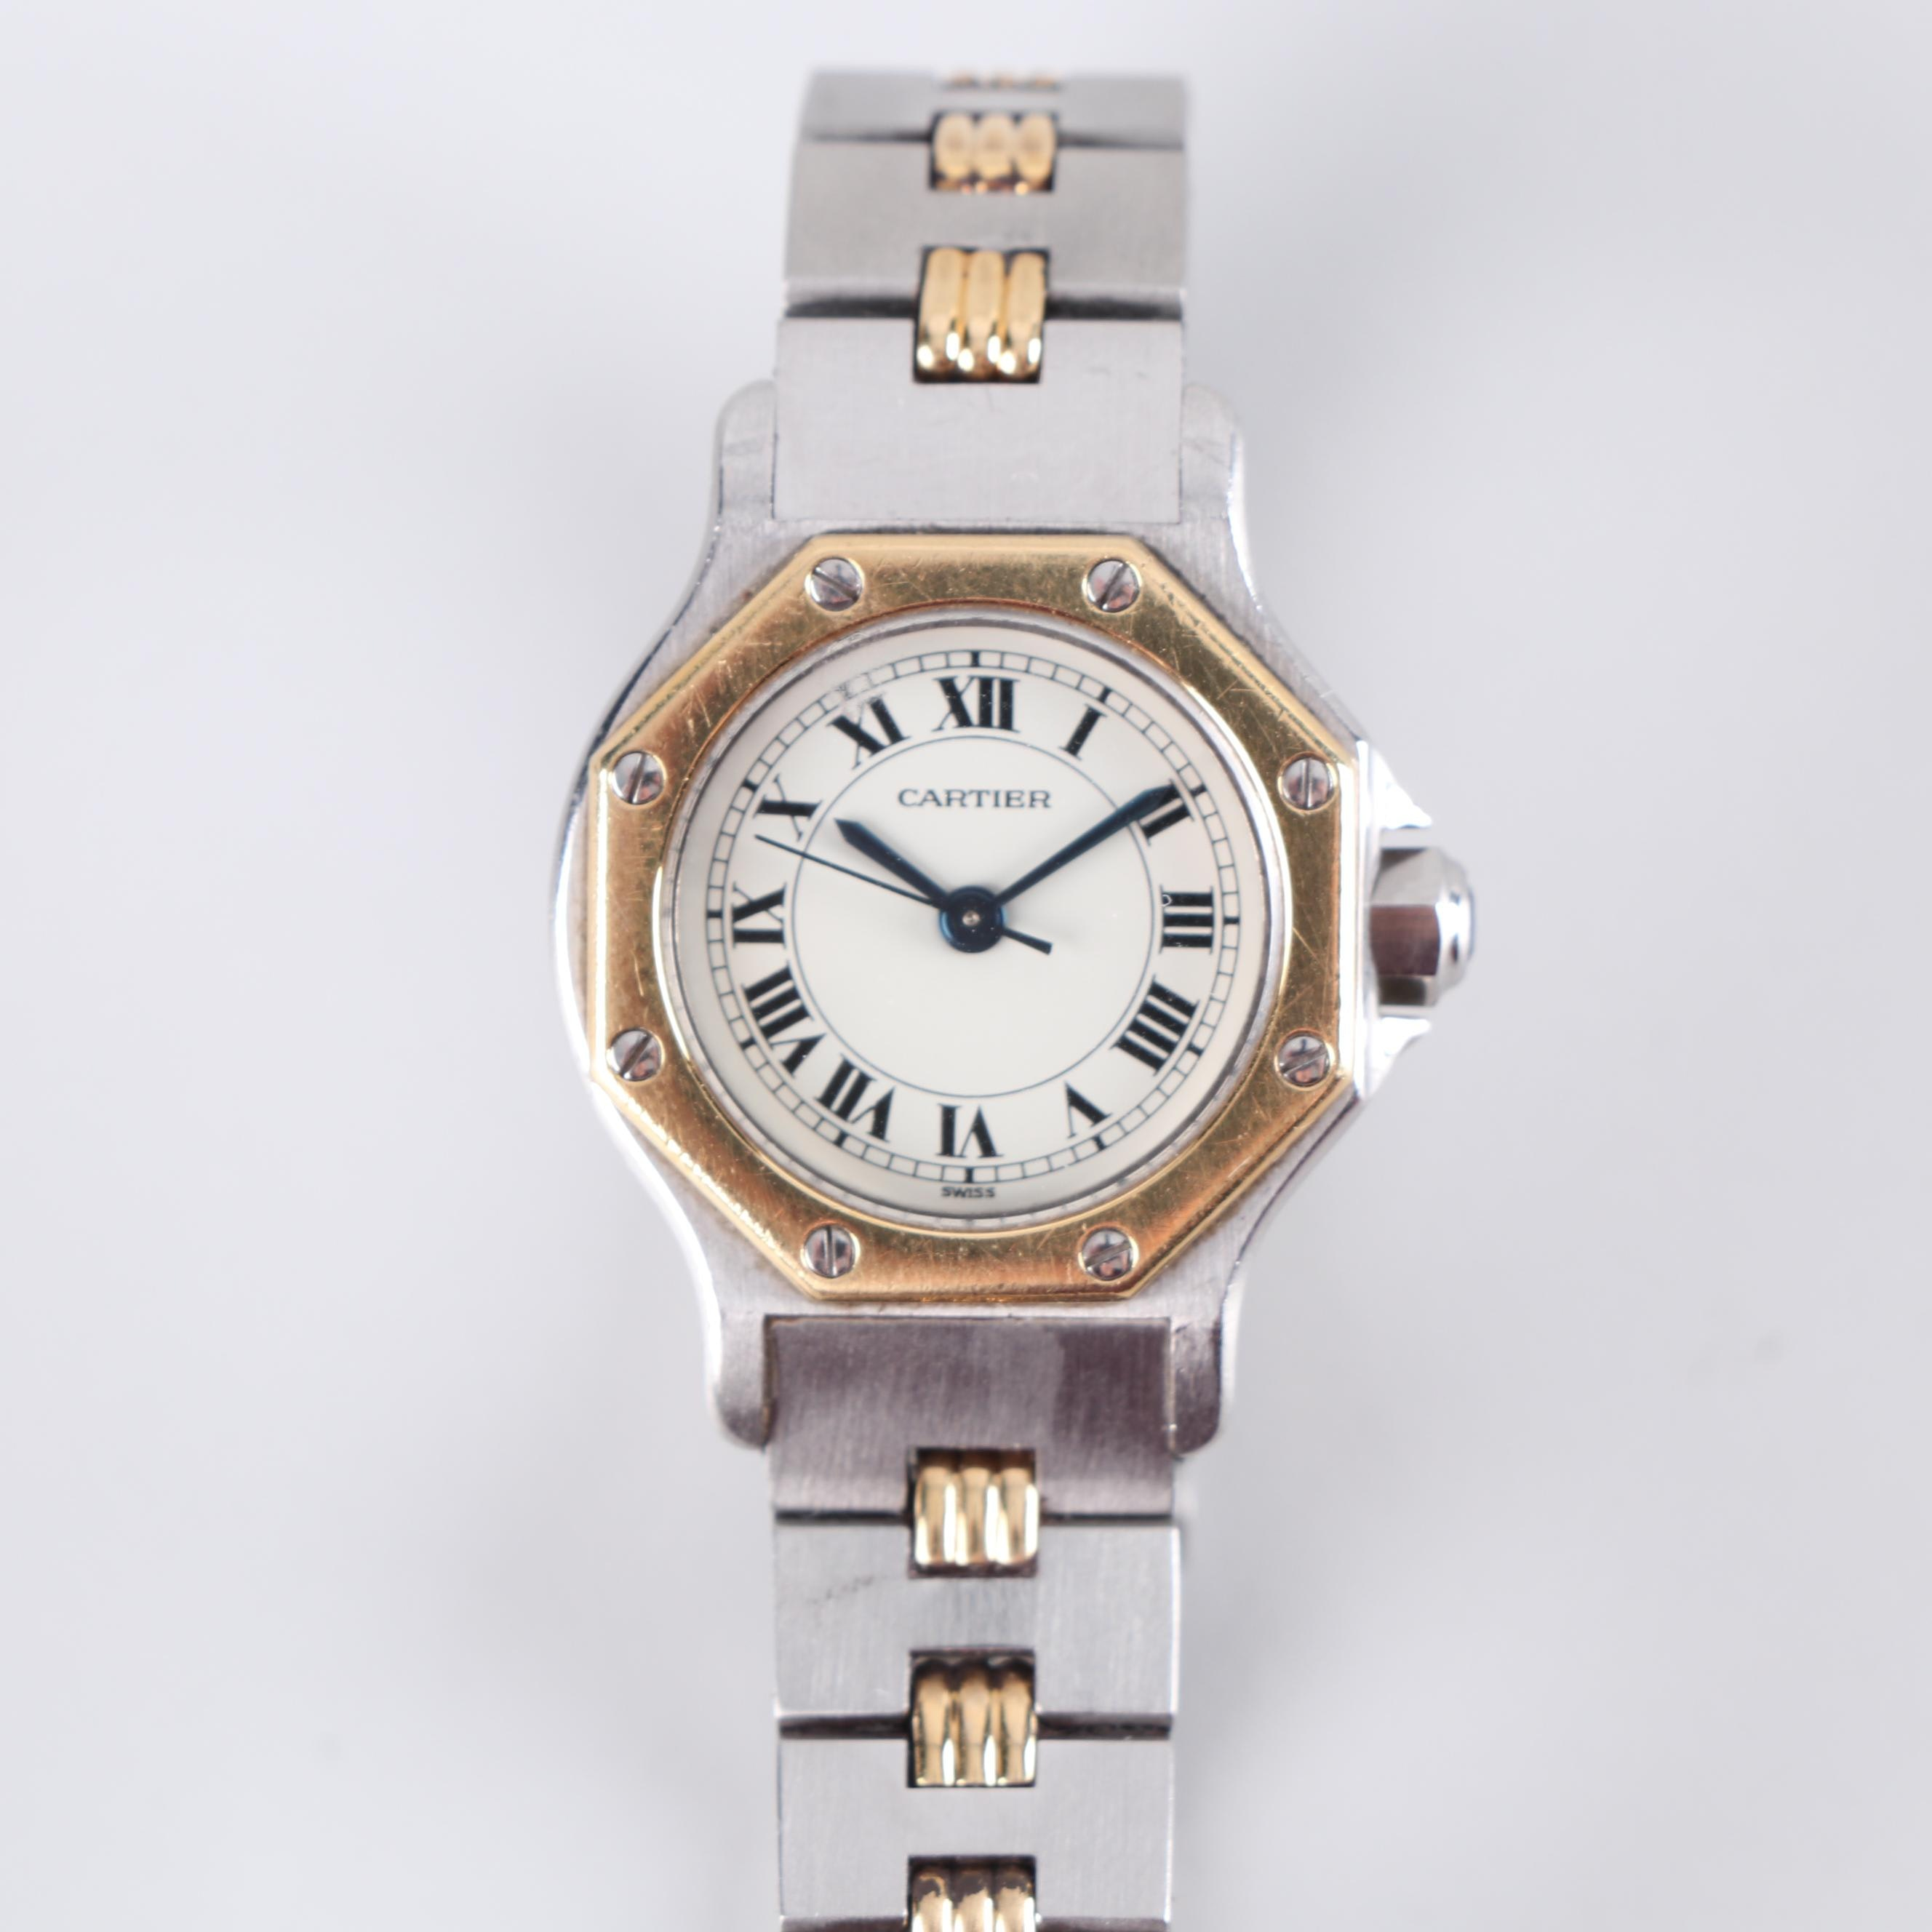 Cartier 18K Yellow Gold Accented Stainless Steel Wristwatch